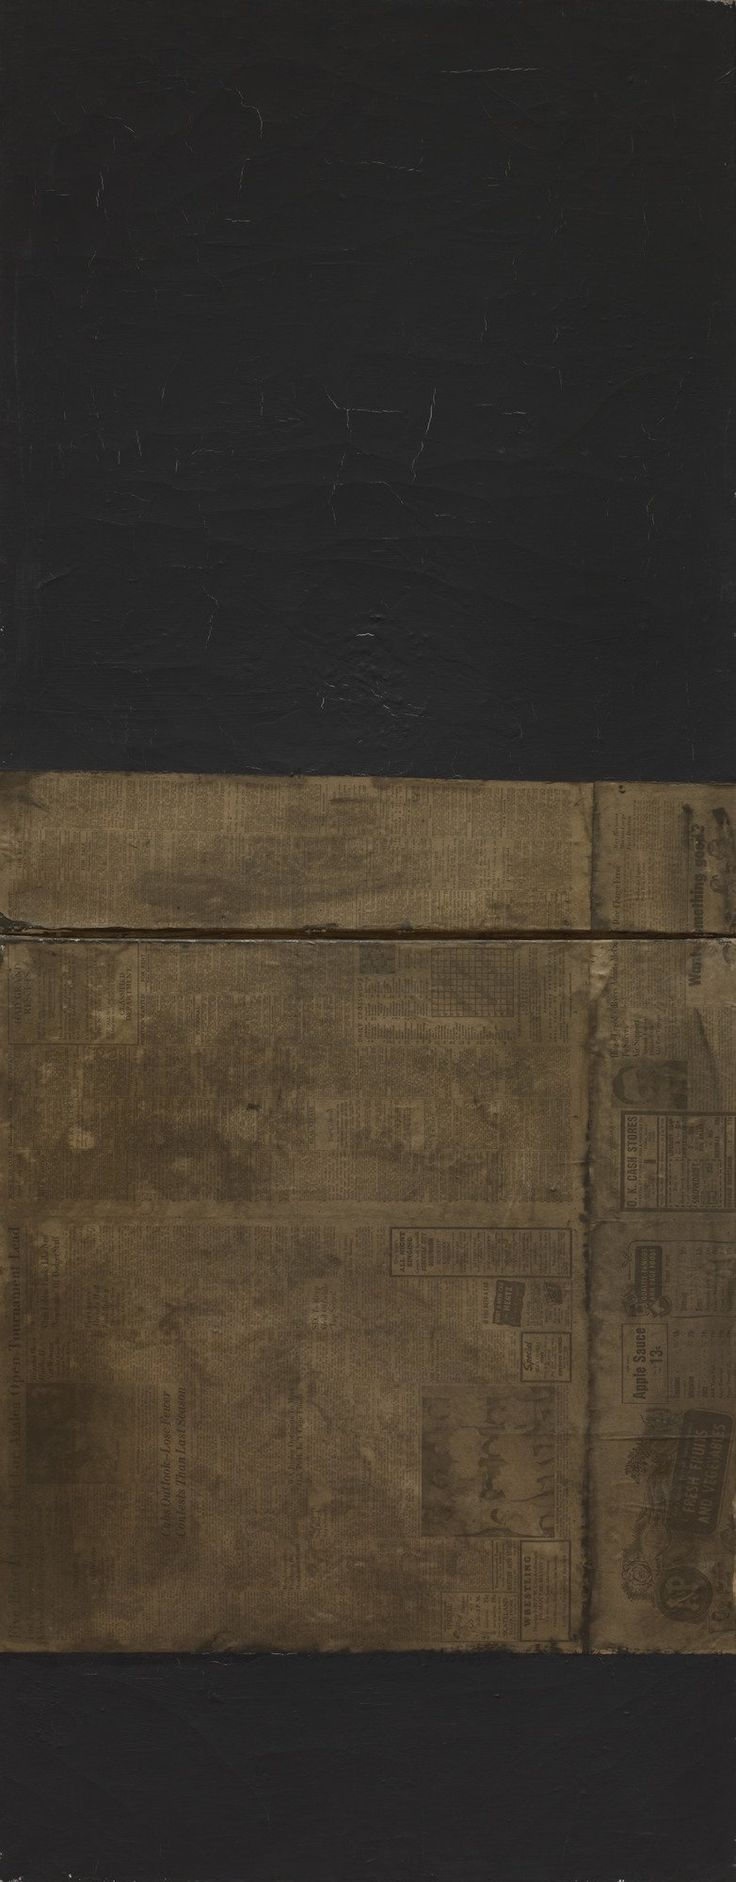 "Rauschenberg made this work from two identical canvases, matte black paint, and a sheet from the August 3, 1951, issue of the Asheville Citizen newspaper. Asheville, North Carolina, is near Black Mountain College, where Rauschenberg was a student in an experimental arts program in the late 1940s and early 1950s. He considered this and his other black paintings to be ""visual experiences . . . not Art"" and refuted the symbolic associations of his color choice. Despite its sideways orientation…"